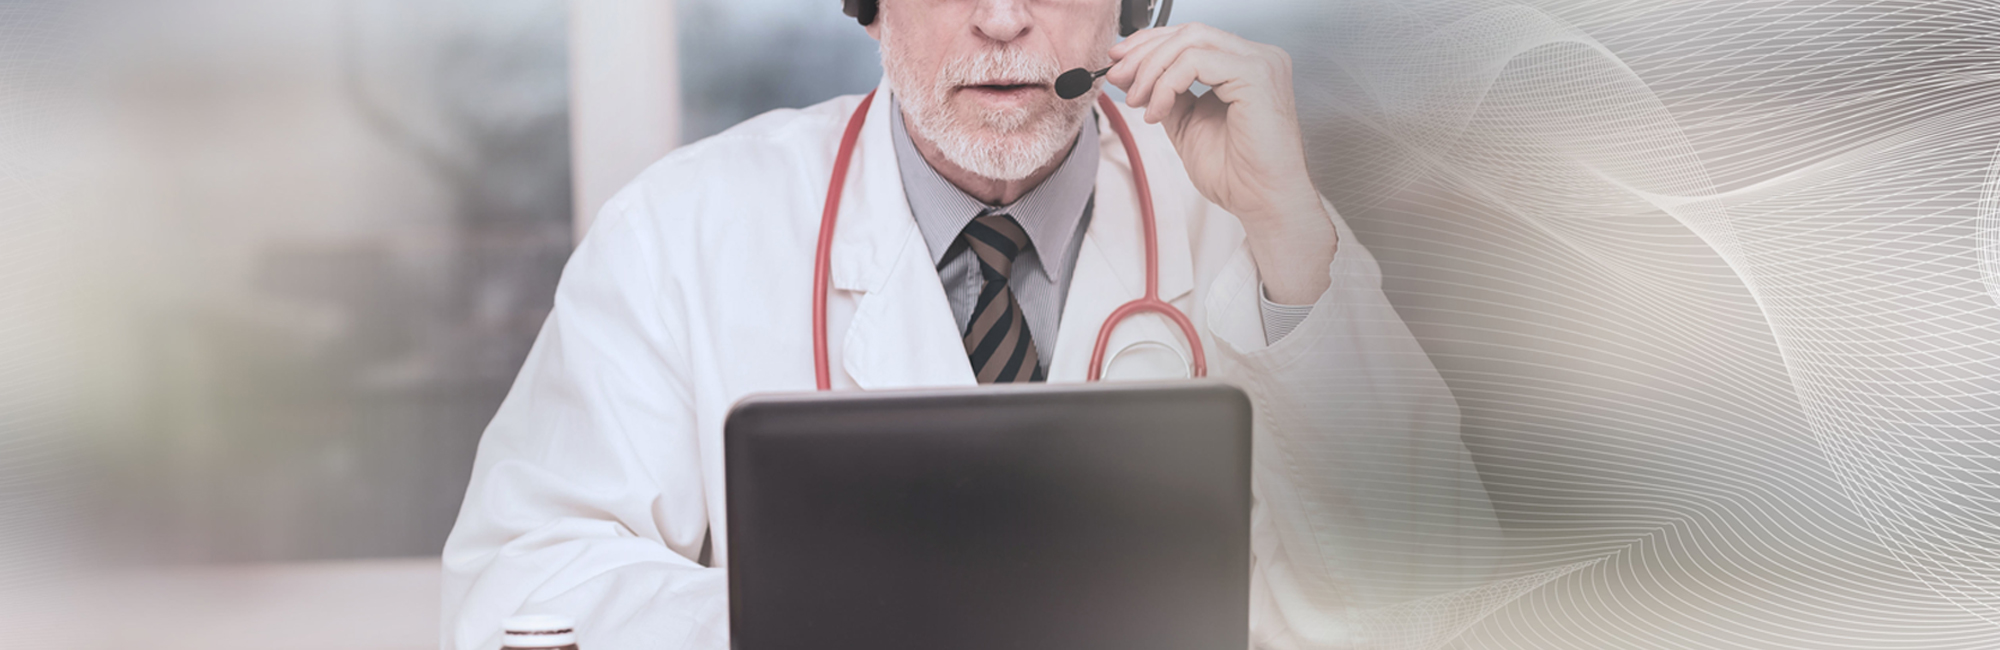 Telemedicine with The Center For Dermatology & Laser Surgery